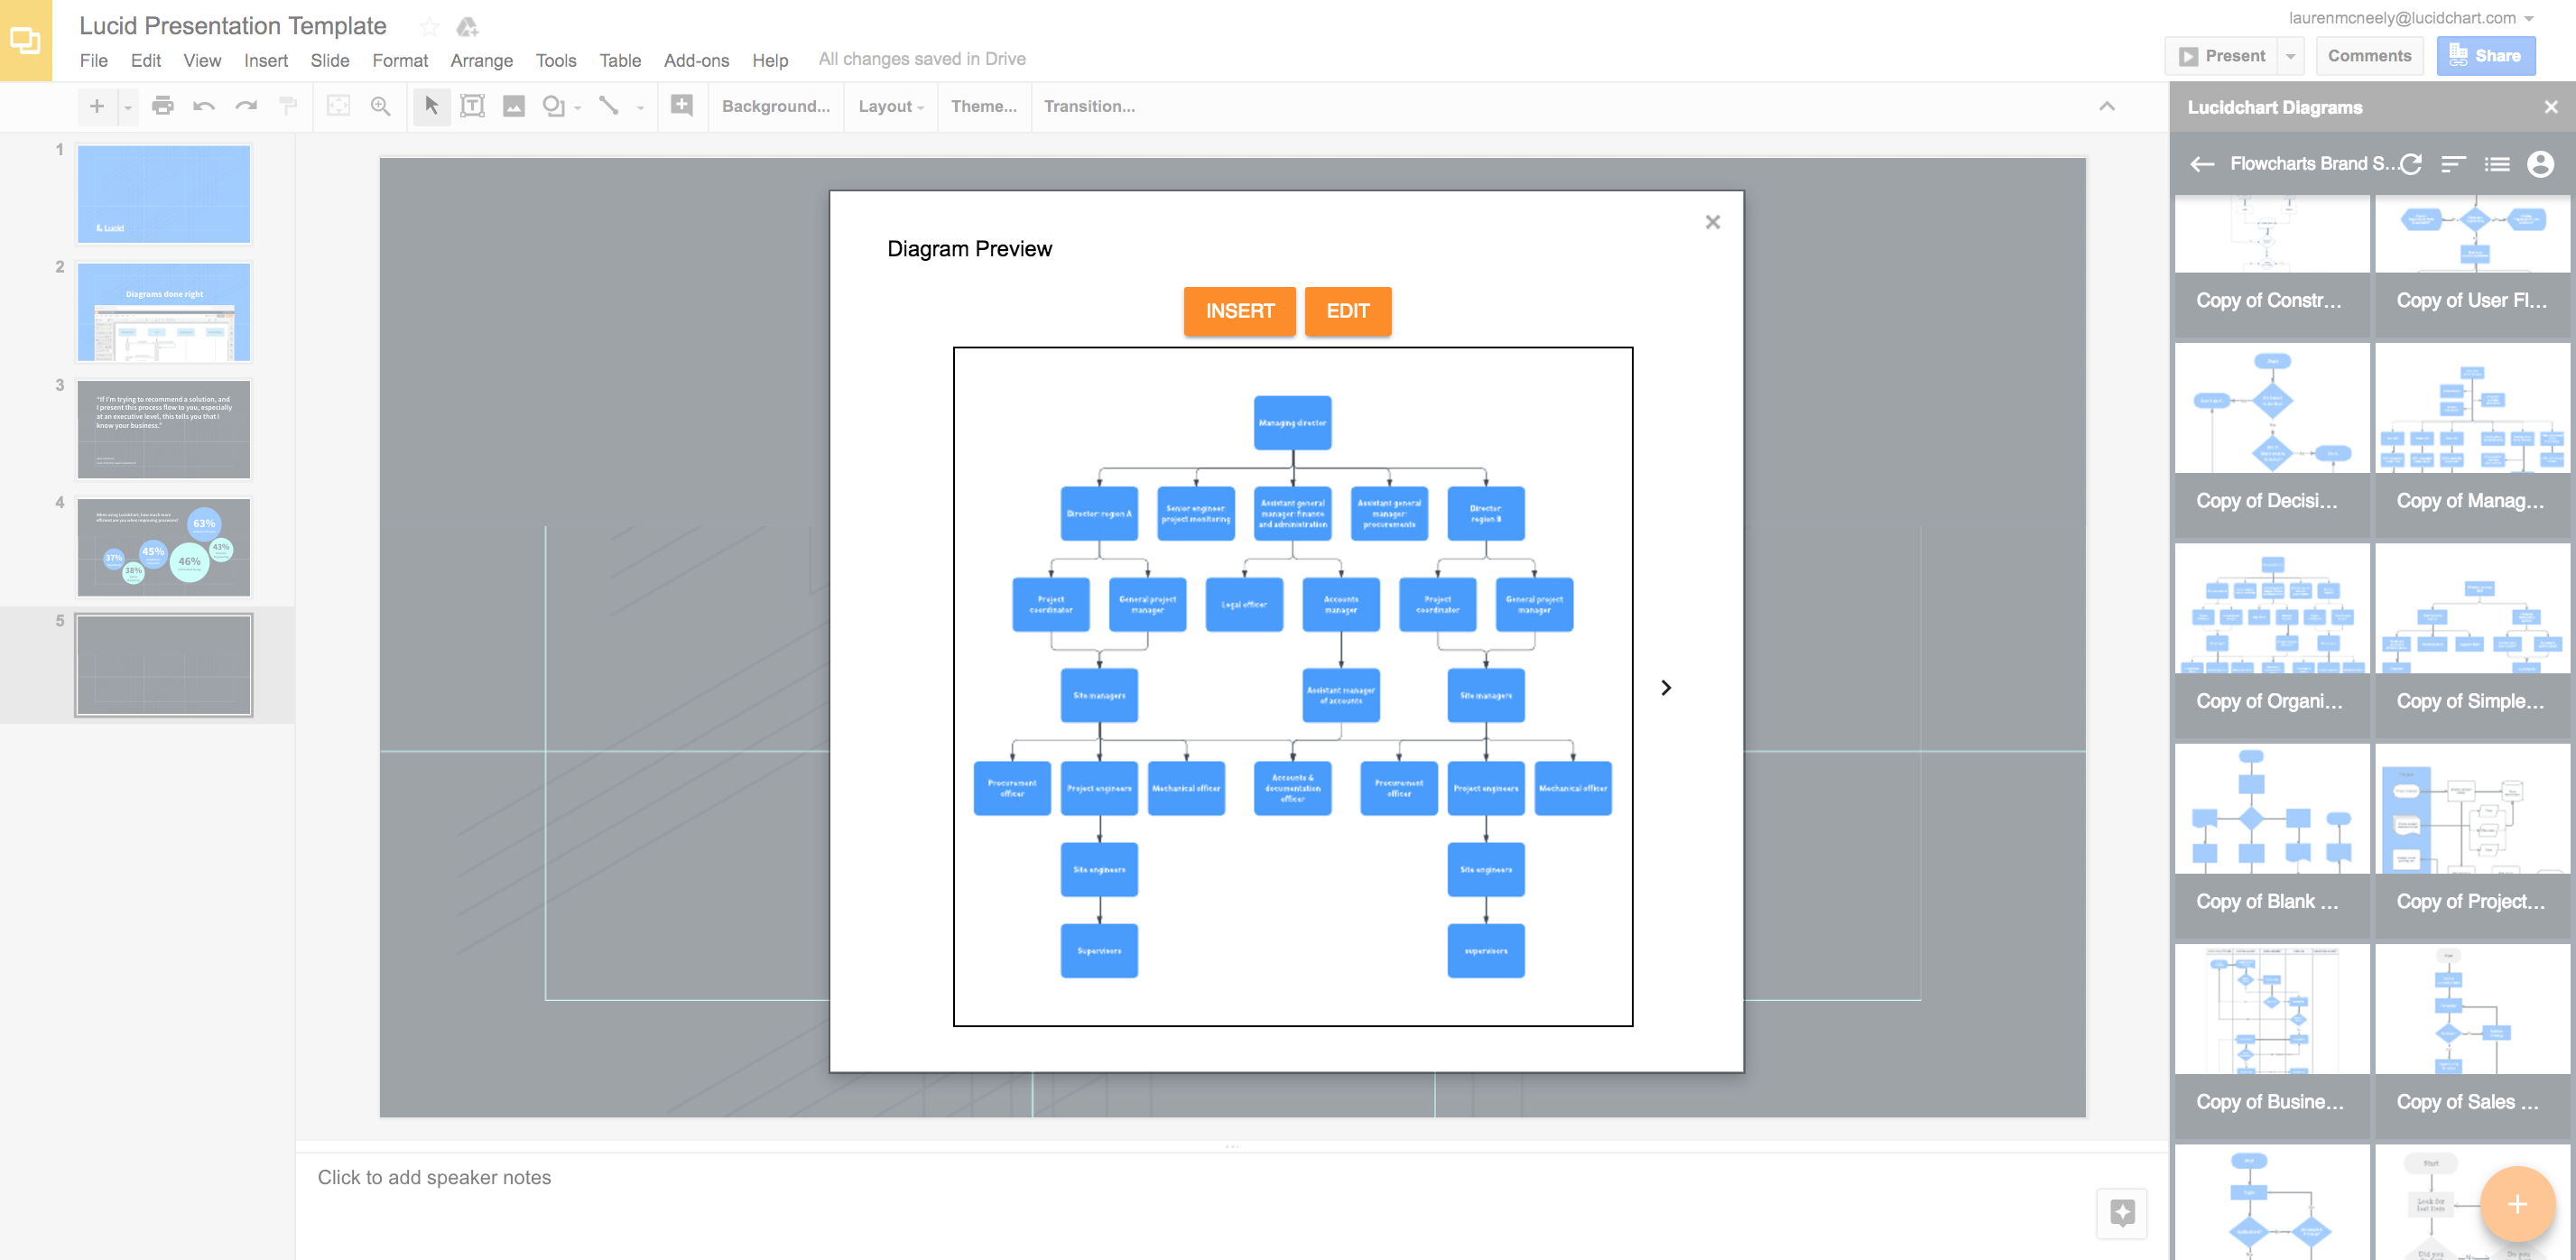 announcing lucidchart diagrams for google slides lucidchart bloguse diagrams in your slides to make a lasting statement install lucidchart diagrams for google slides today!